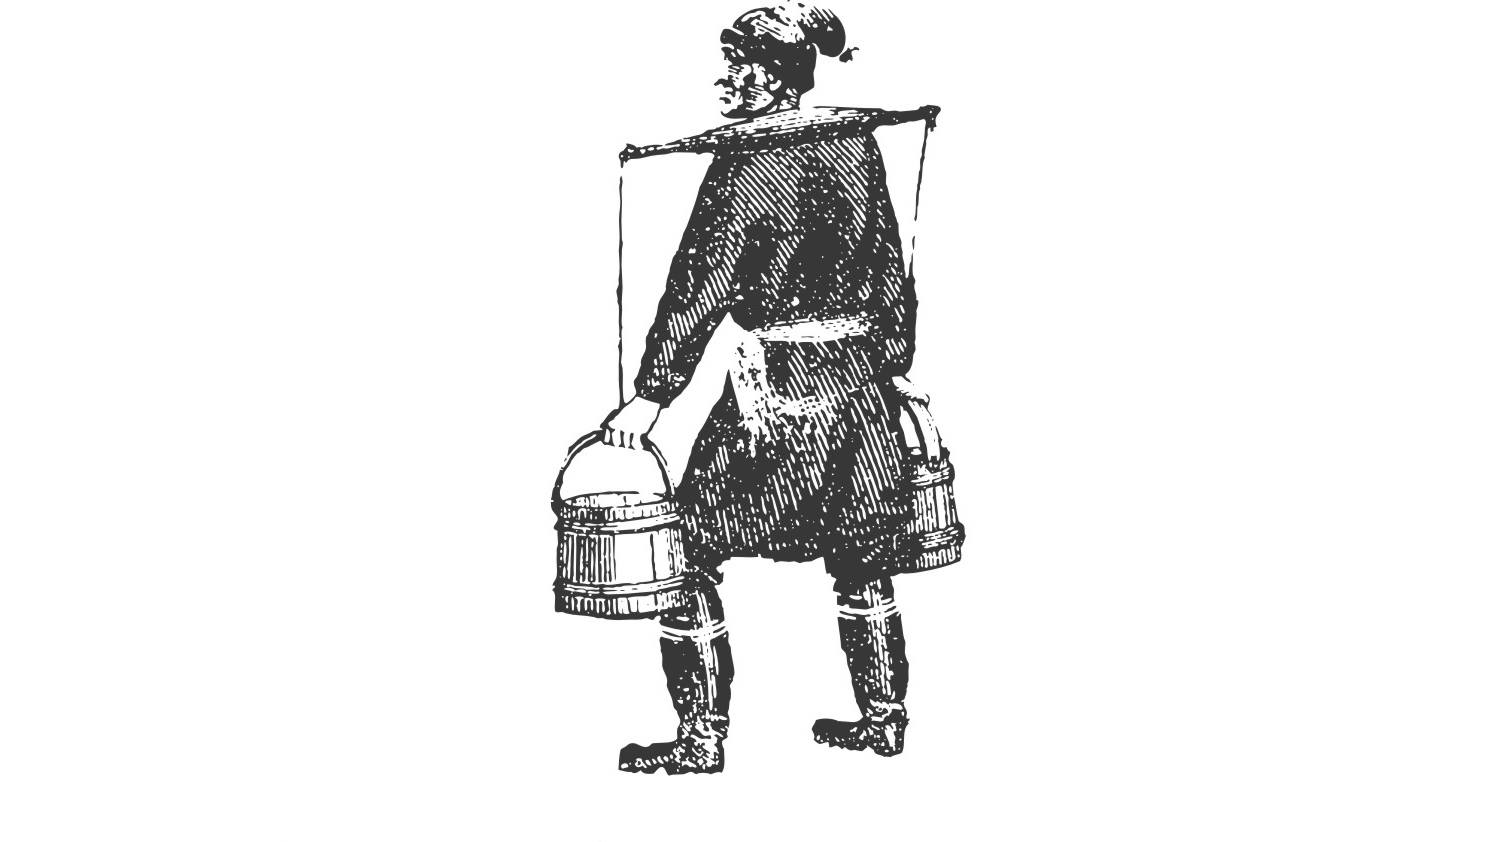 With the help of graphic designer    Scott Gladd   , the Cosman & Webb logo was created. European settlers traditionally collected syrup in wooden buckets hung from a yoke placed across their shoulders, like the one shown in the image.